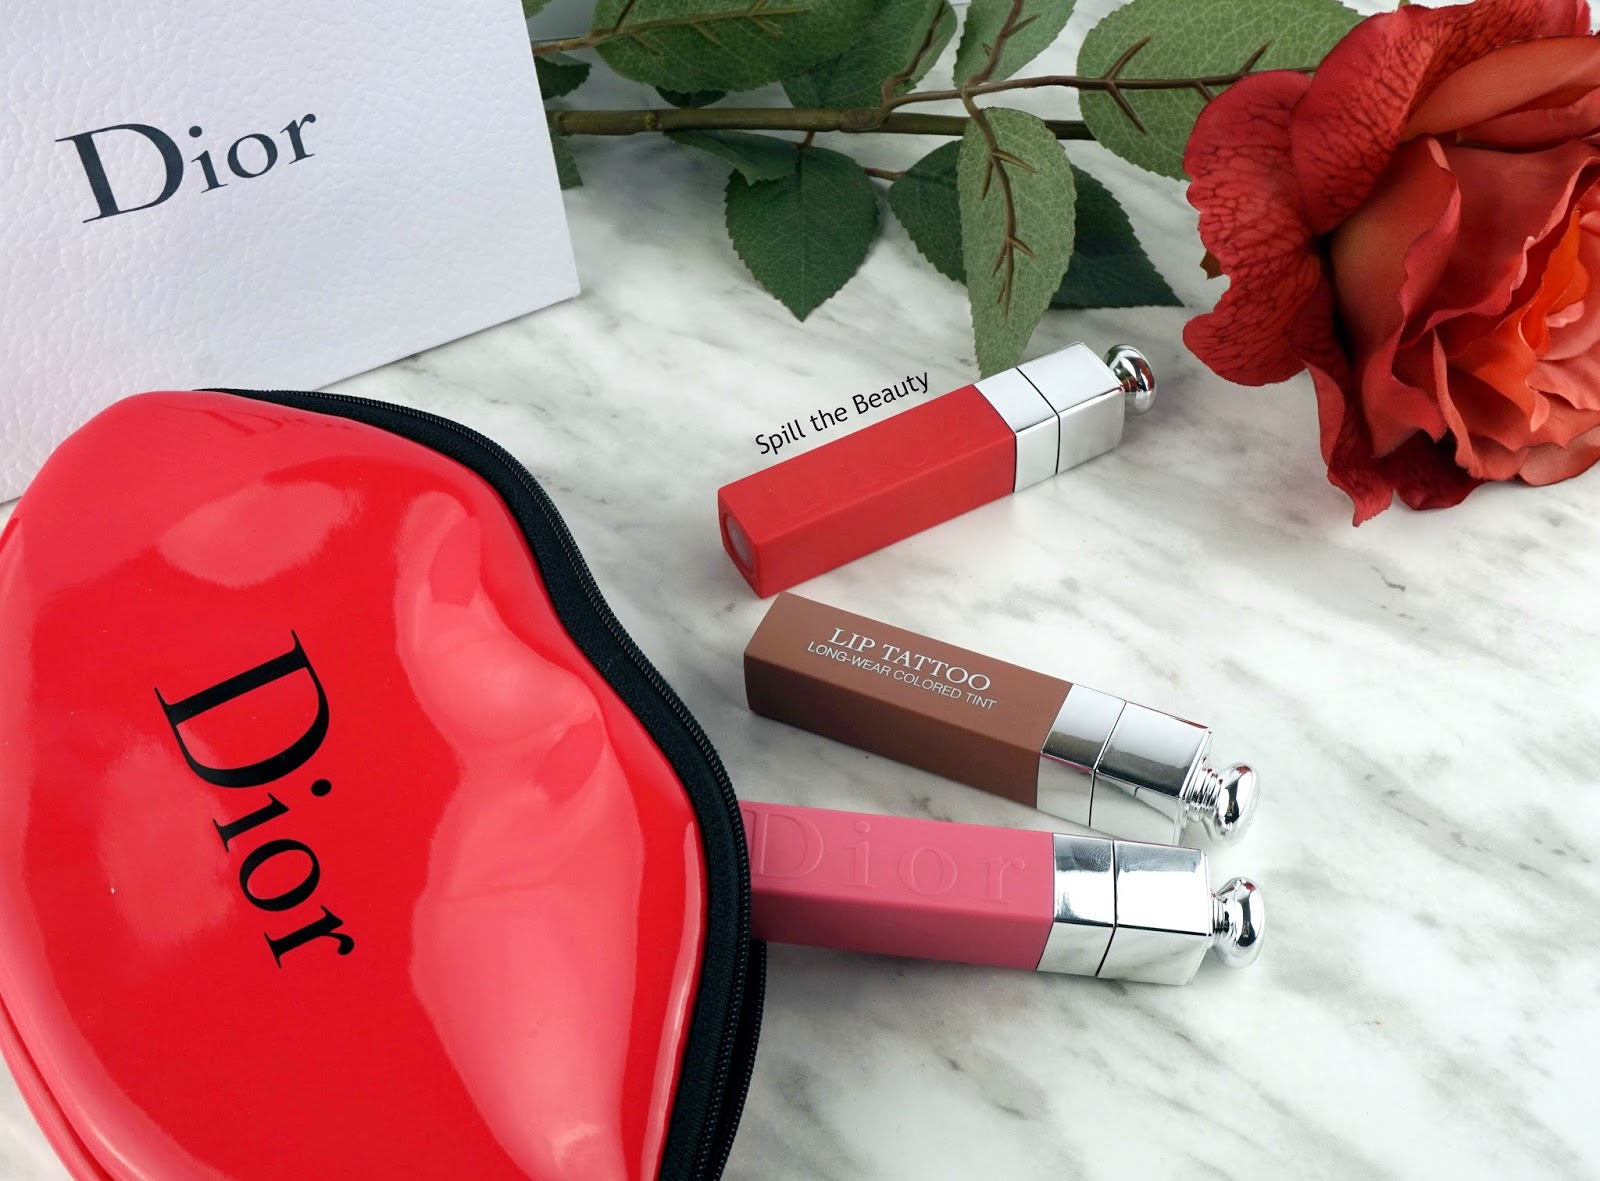 Dior Addict Lip Tattoo Long-Wear Colored Tint – Review, Swatches, Looks